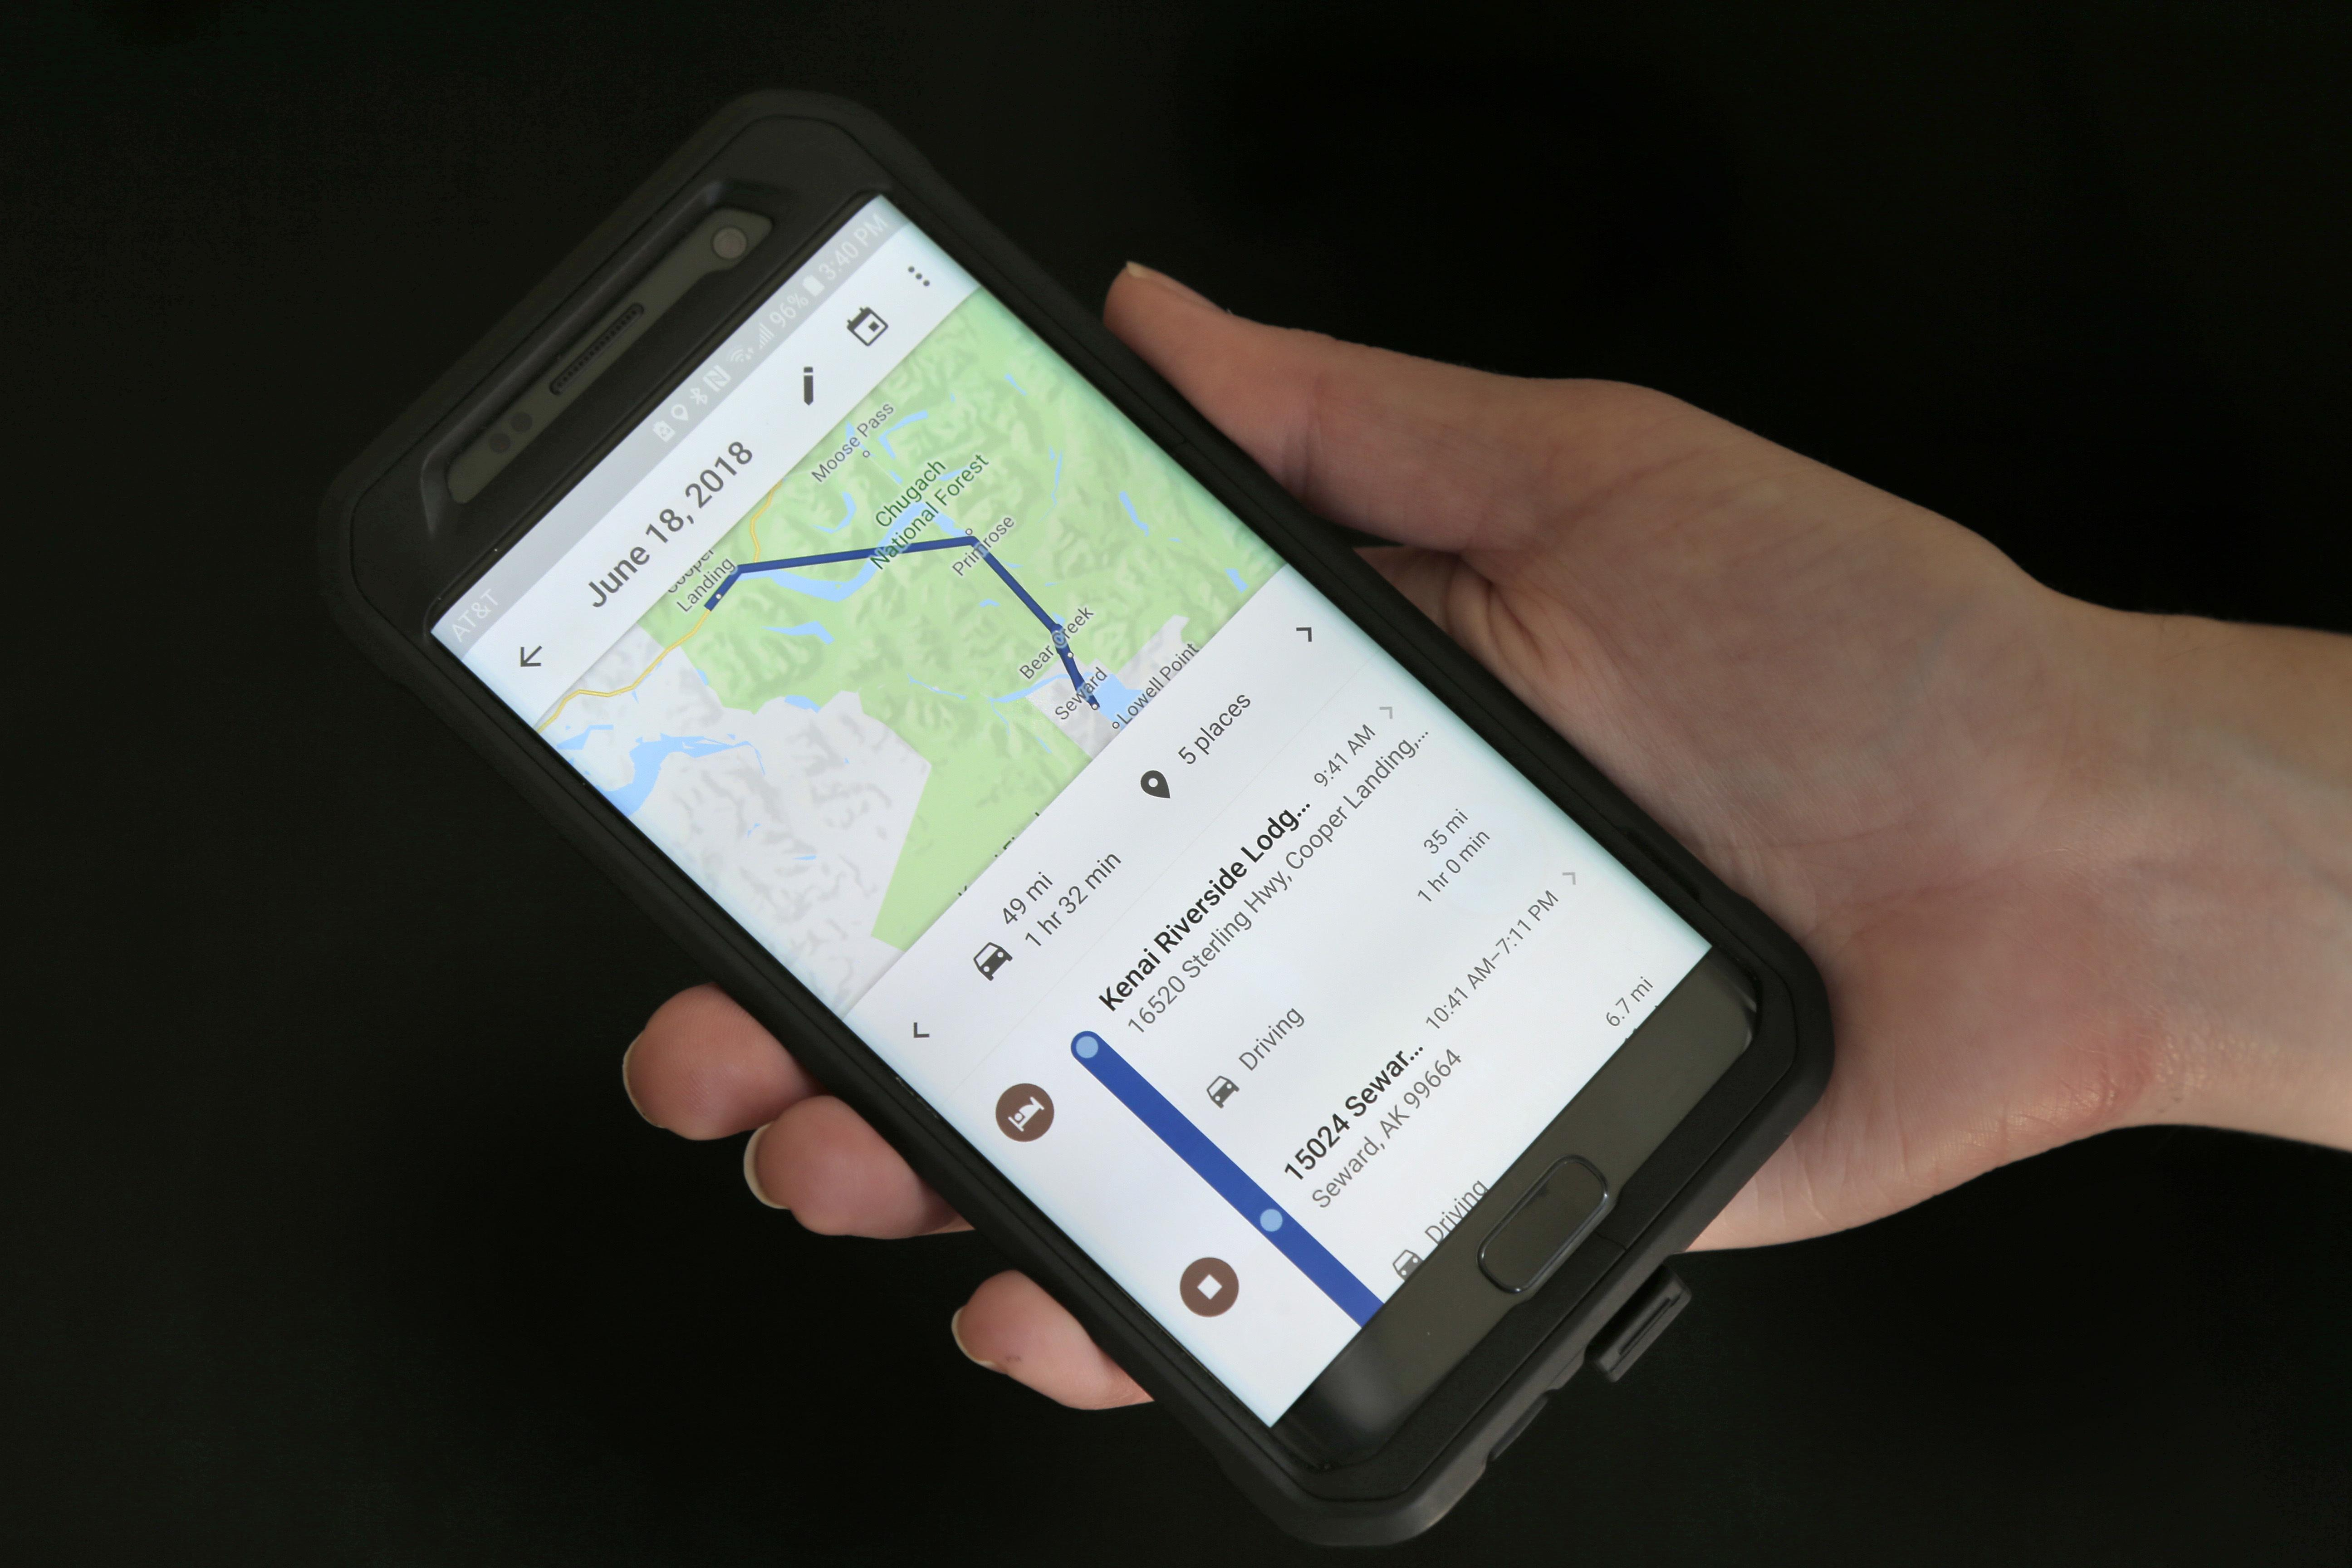 Denver airport drivers get stuck in mud using Google Maps ... on mobile al city map, alabama industry map, mobile airport logo, mobile airport mob, mobile school district map, mobile interstate 10 map, mobile network map, mobile airport mobile alabama, mobile airport parking,